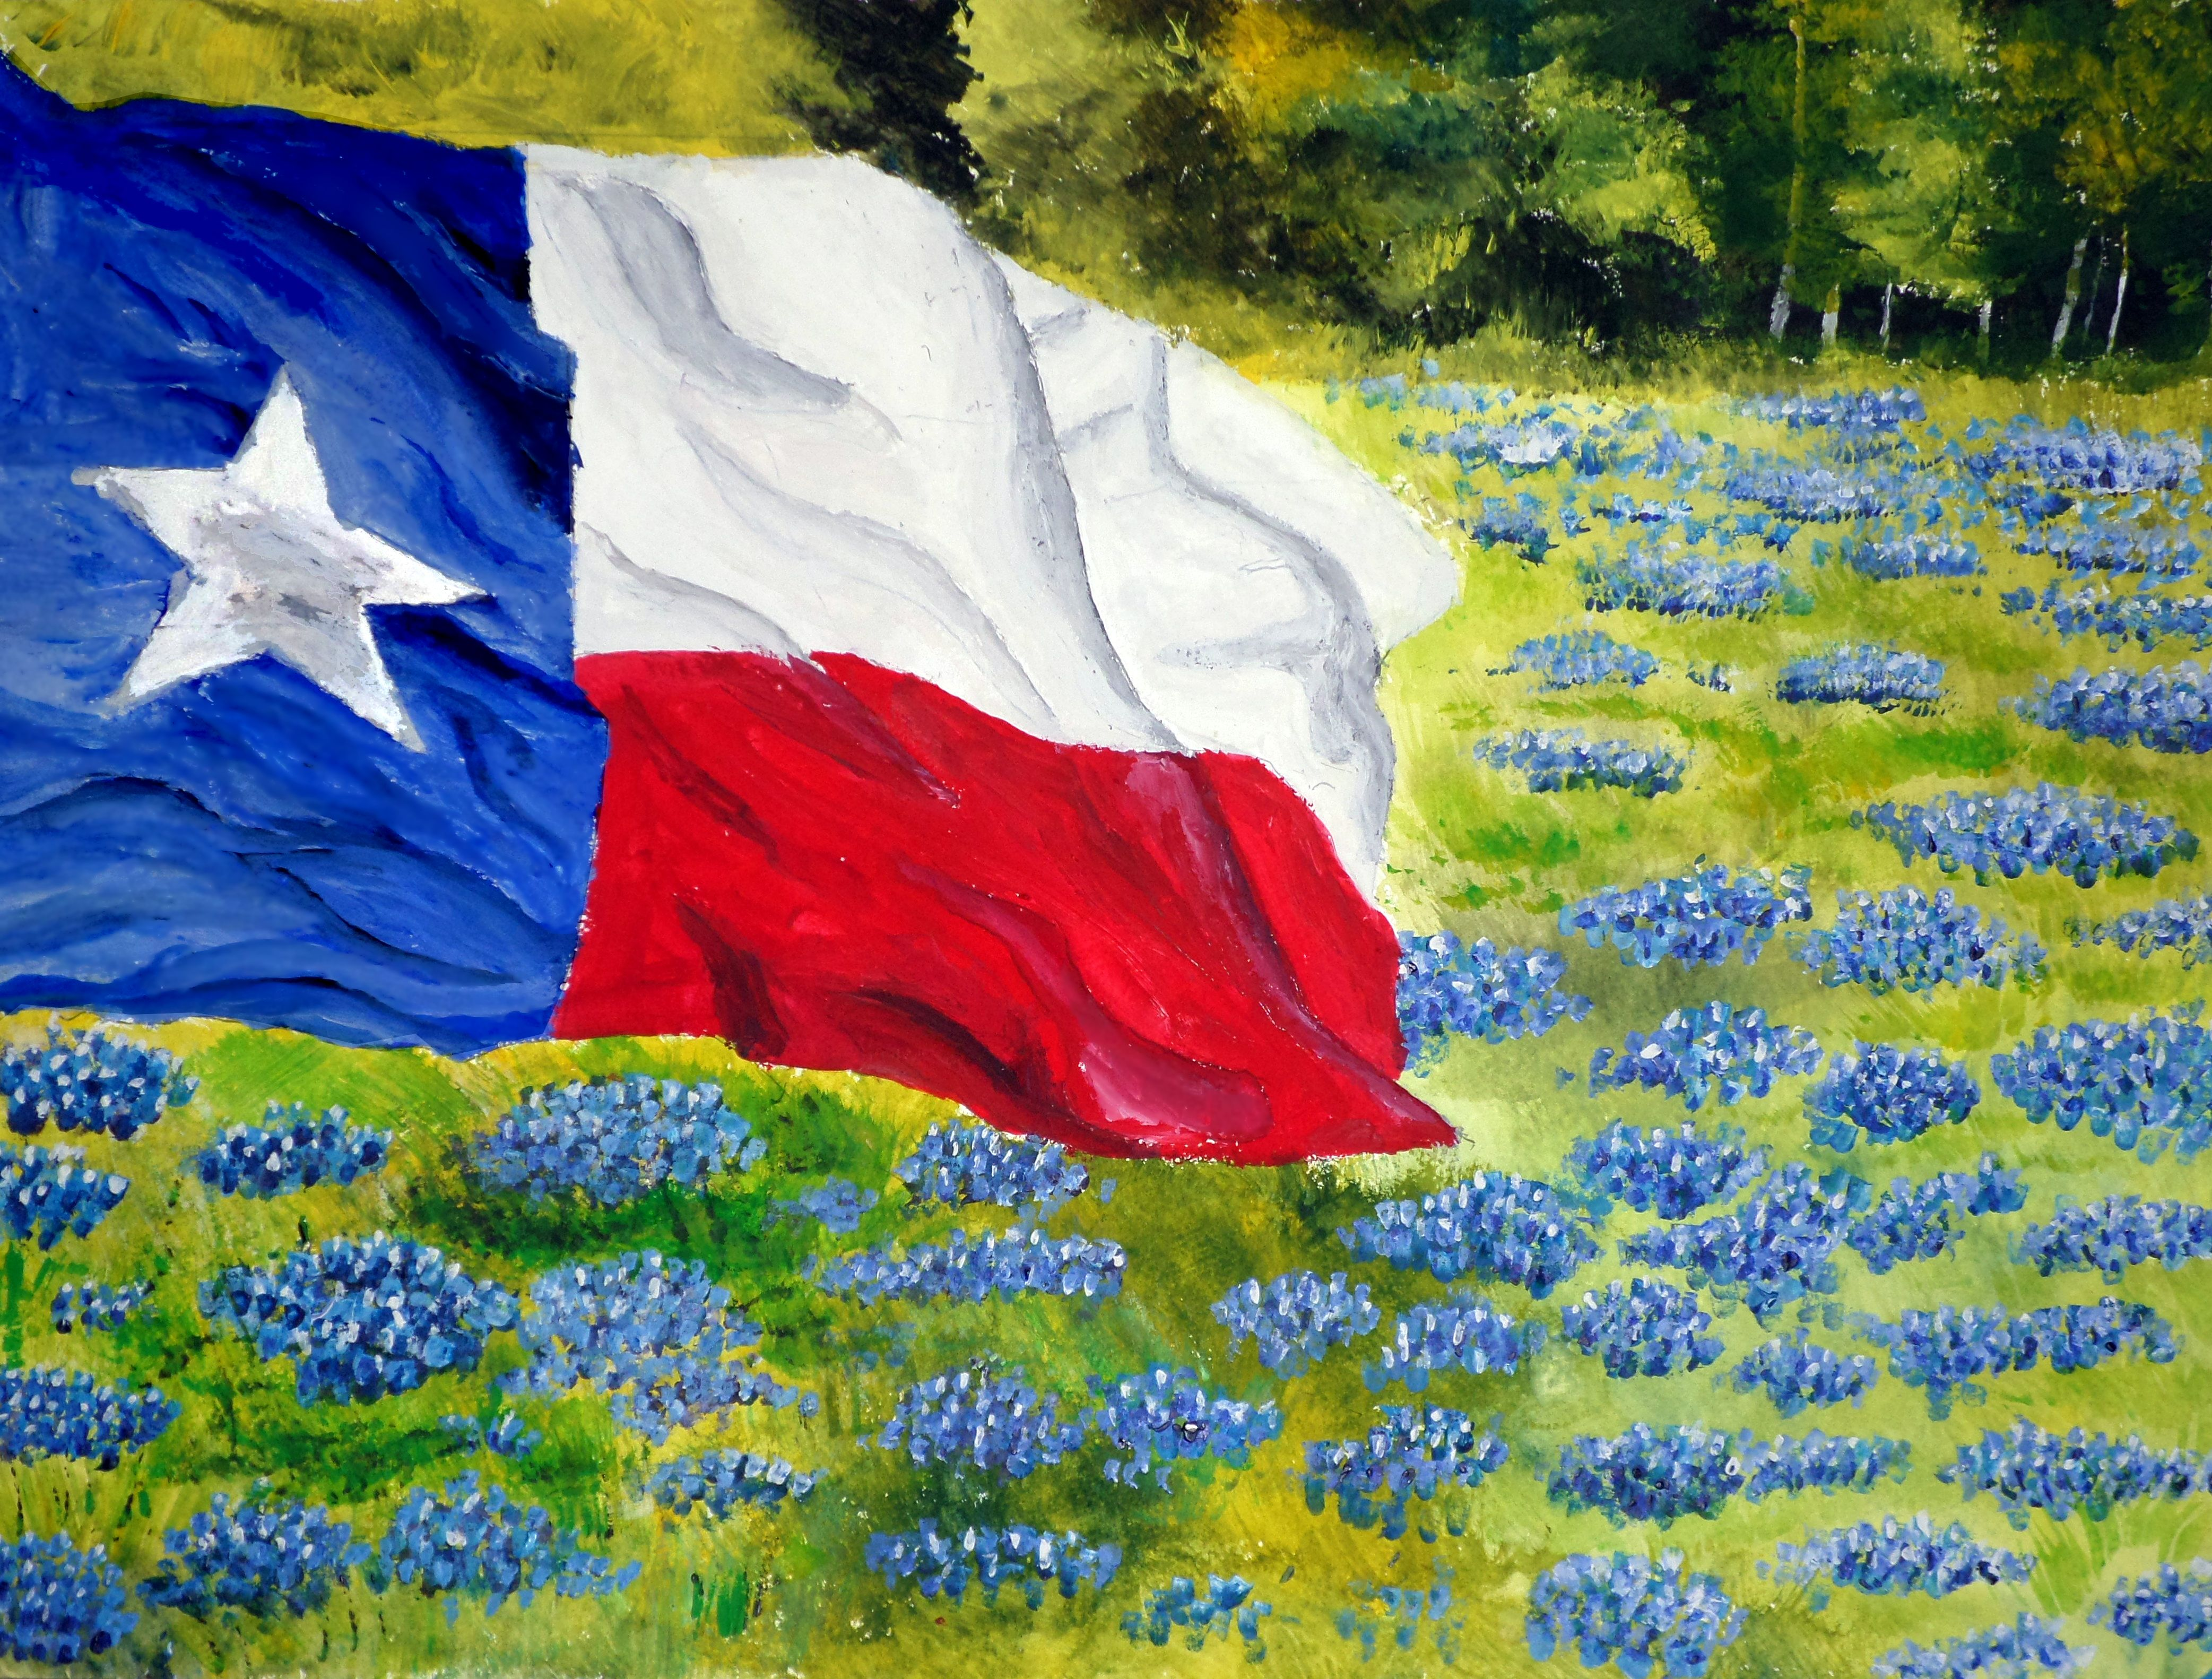 Texas Flag On A Field Of Bluebonnets Original Watercolor Painting Star Painting Texas Art Painting